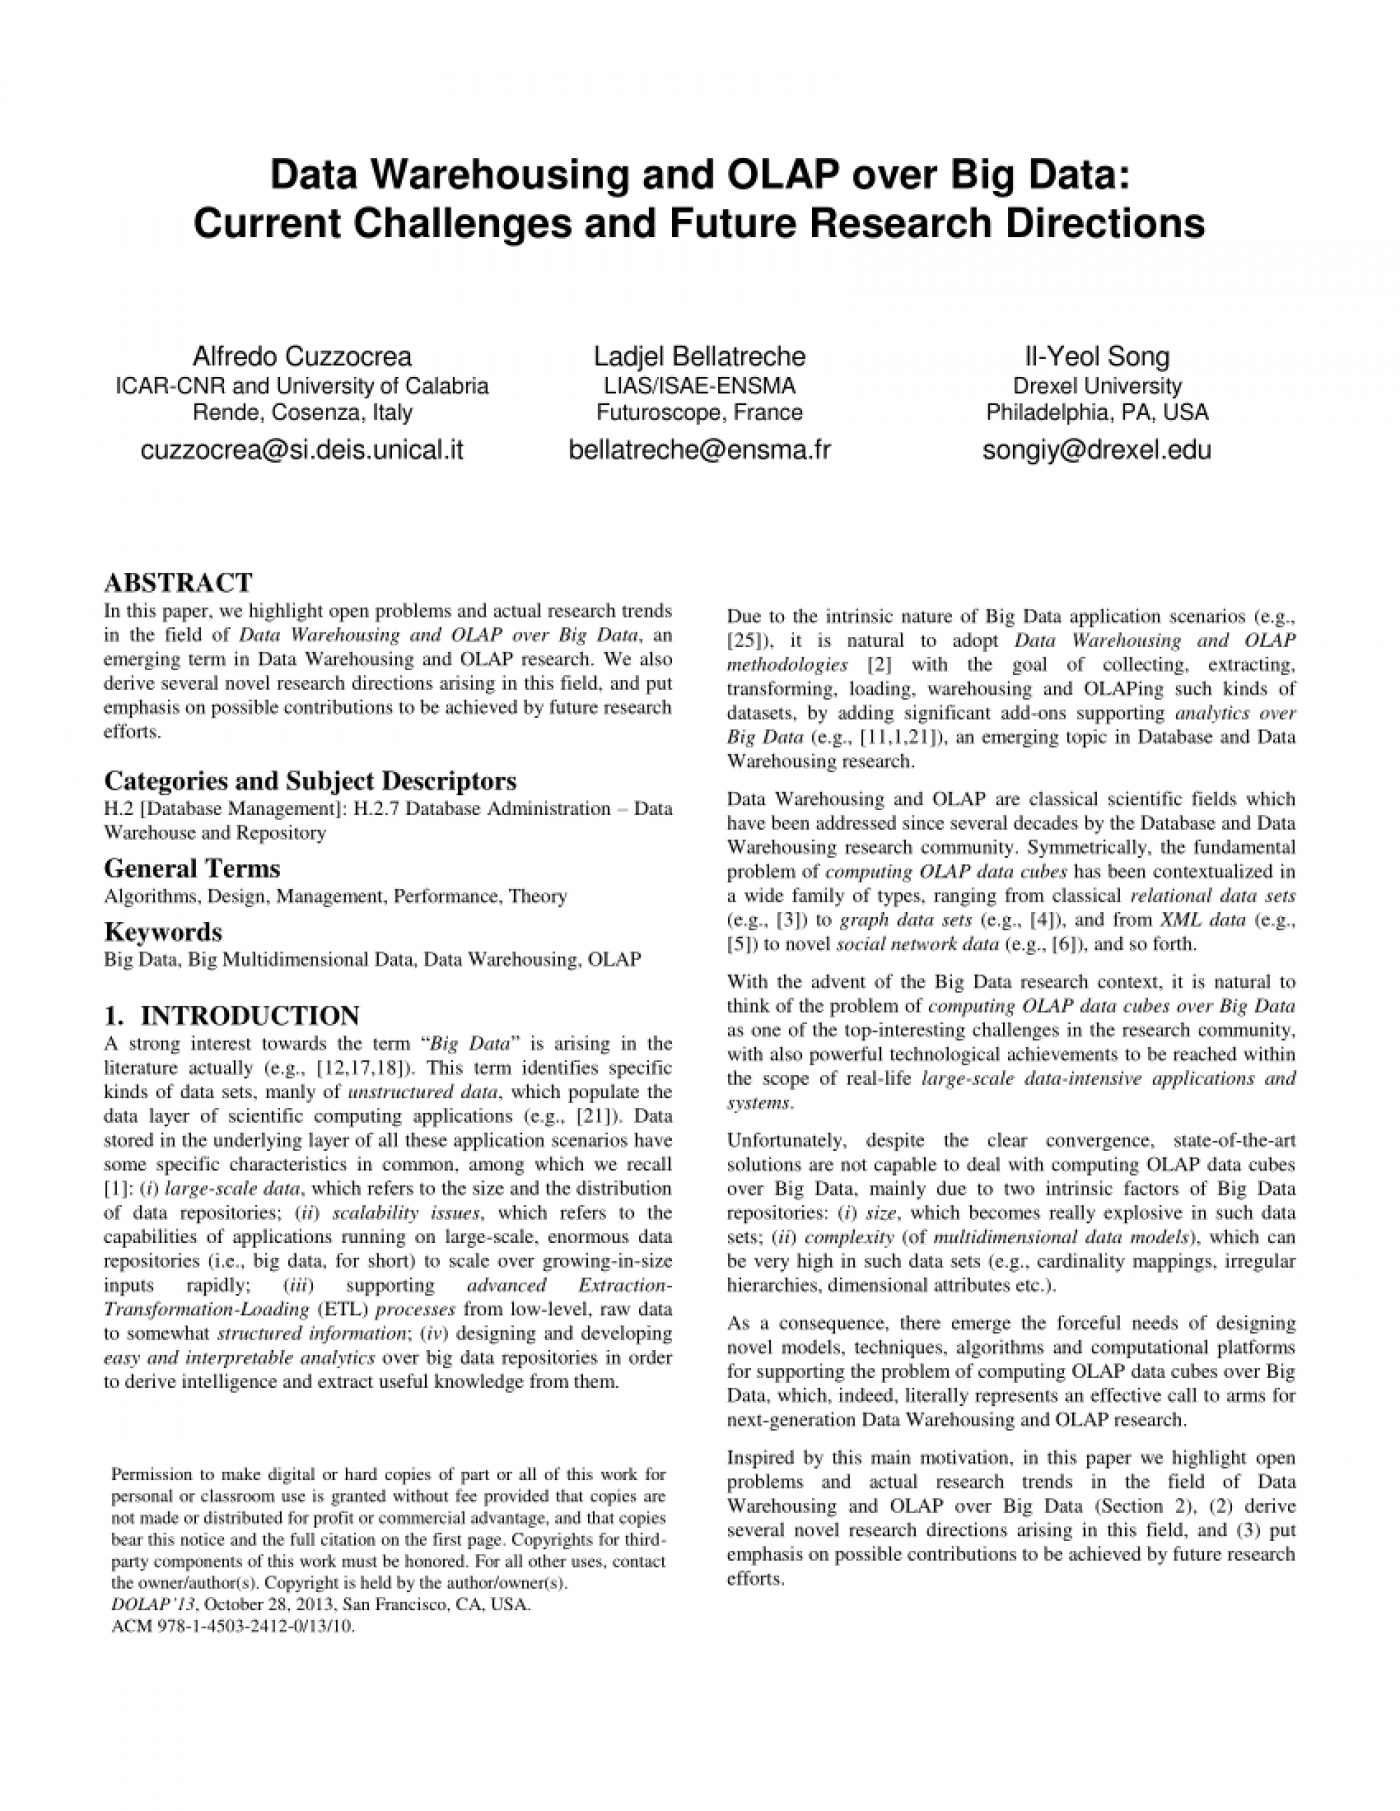 004 Largepreview Research Paper Database Design Amazing Topics 1400